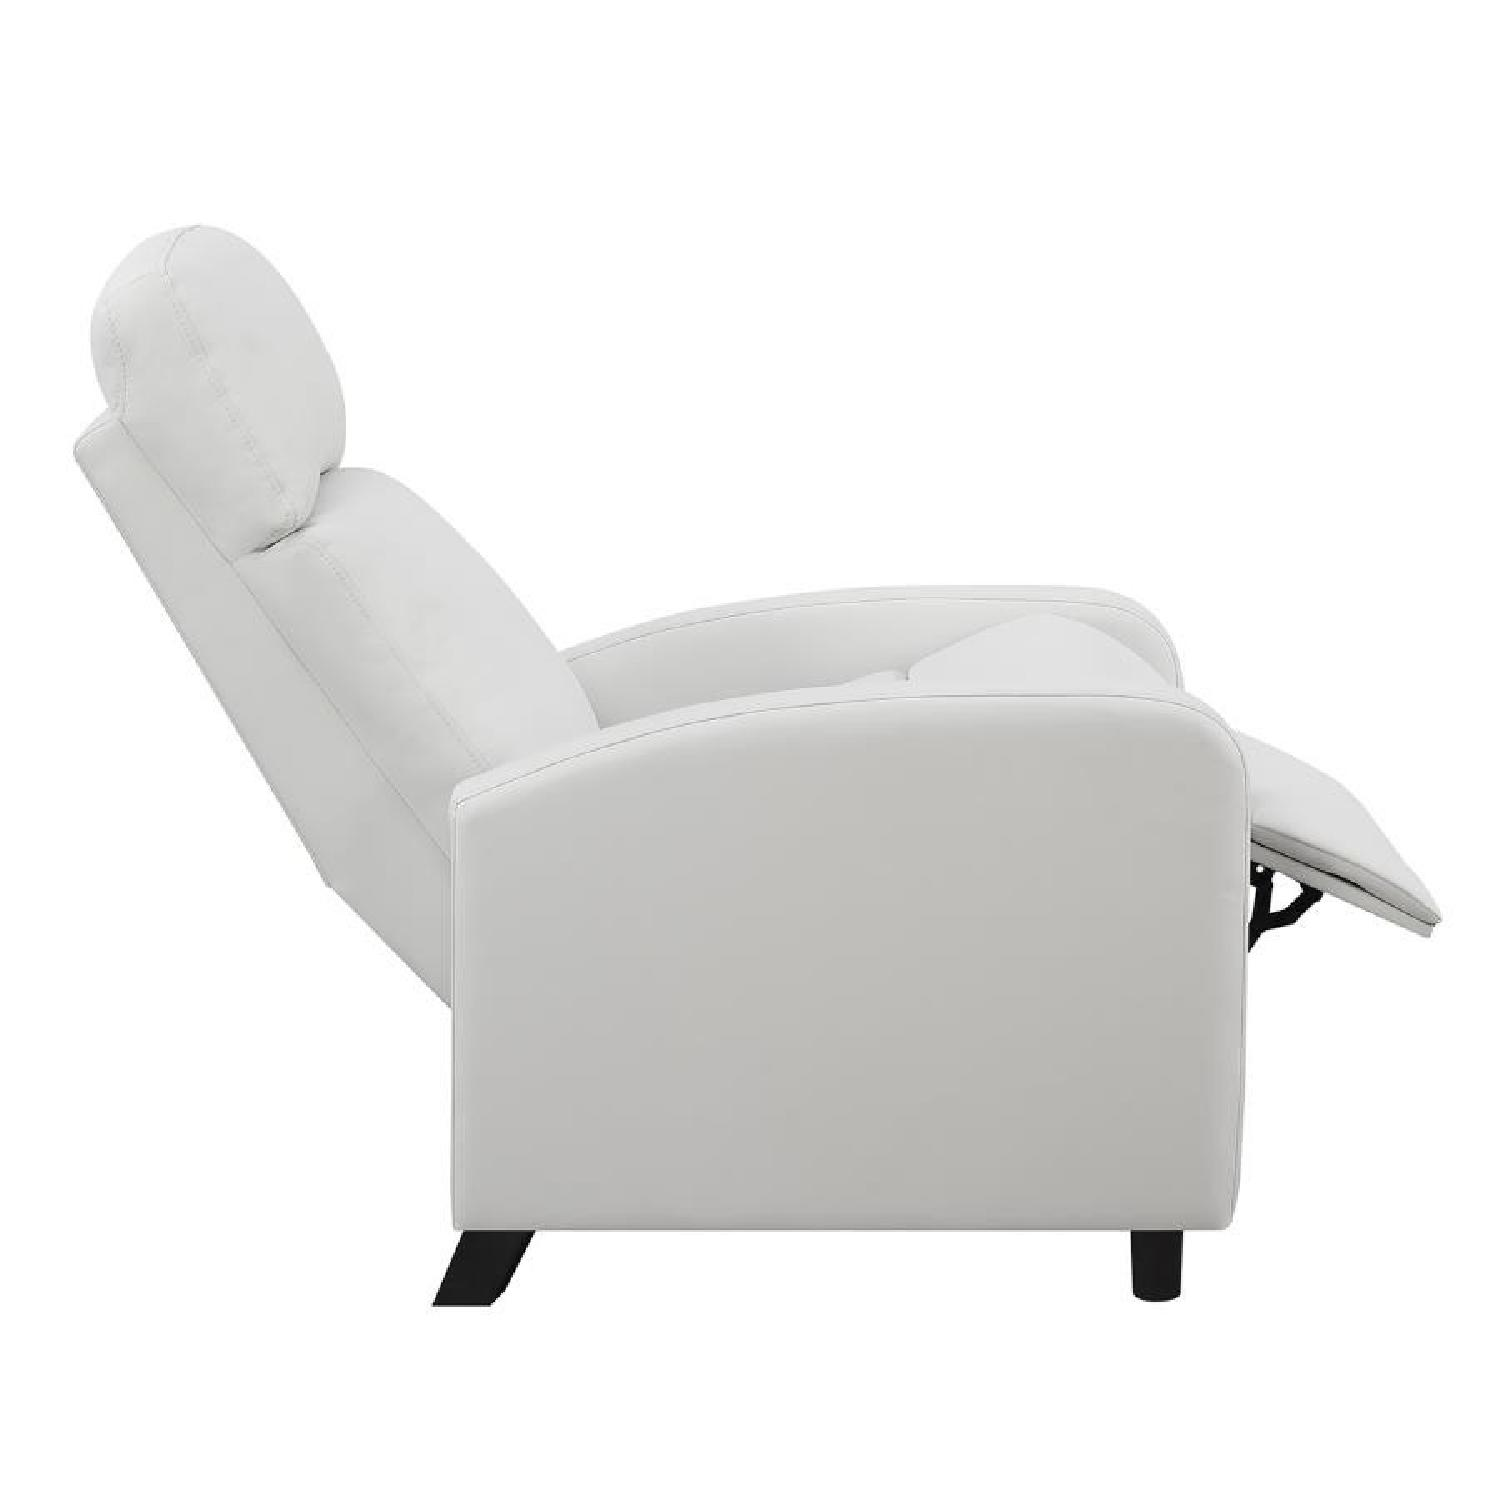 Compact Recliner Chair in White Leatherette-2